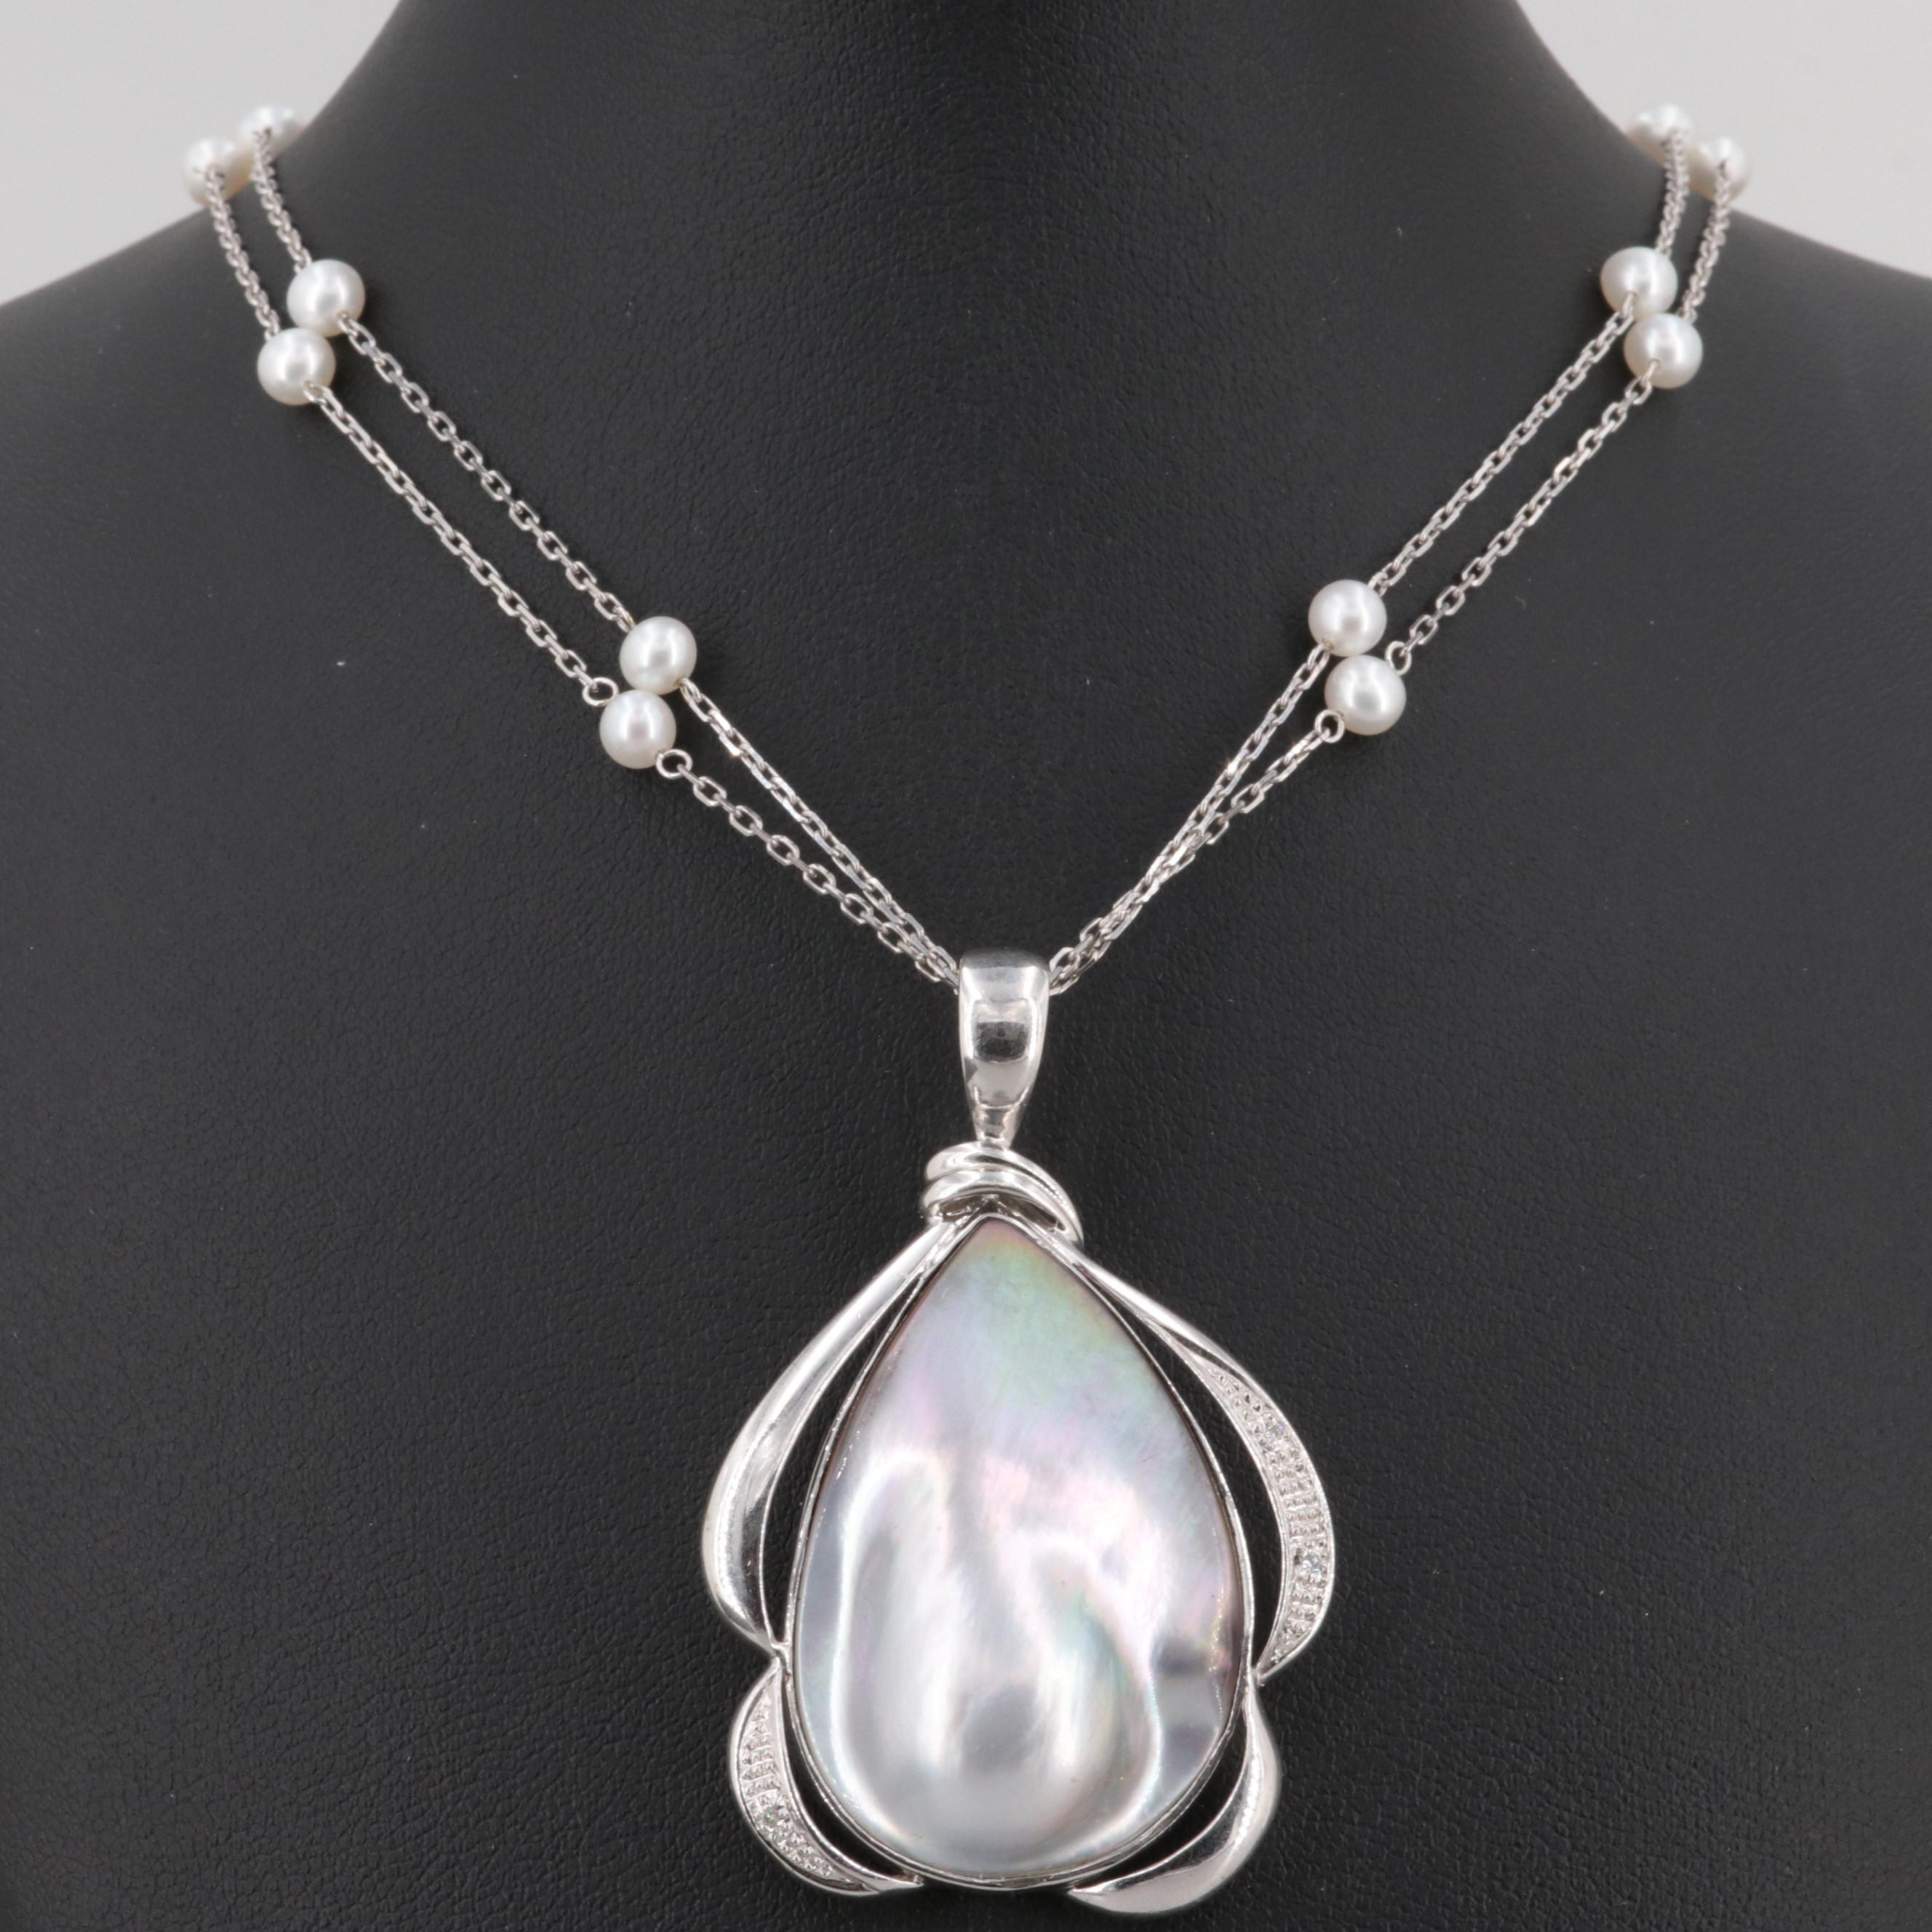 14K White Gold Cultured Pearl and Diamond Enhancer Pendant Necklace